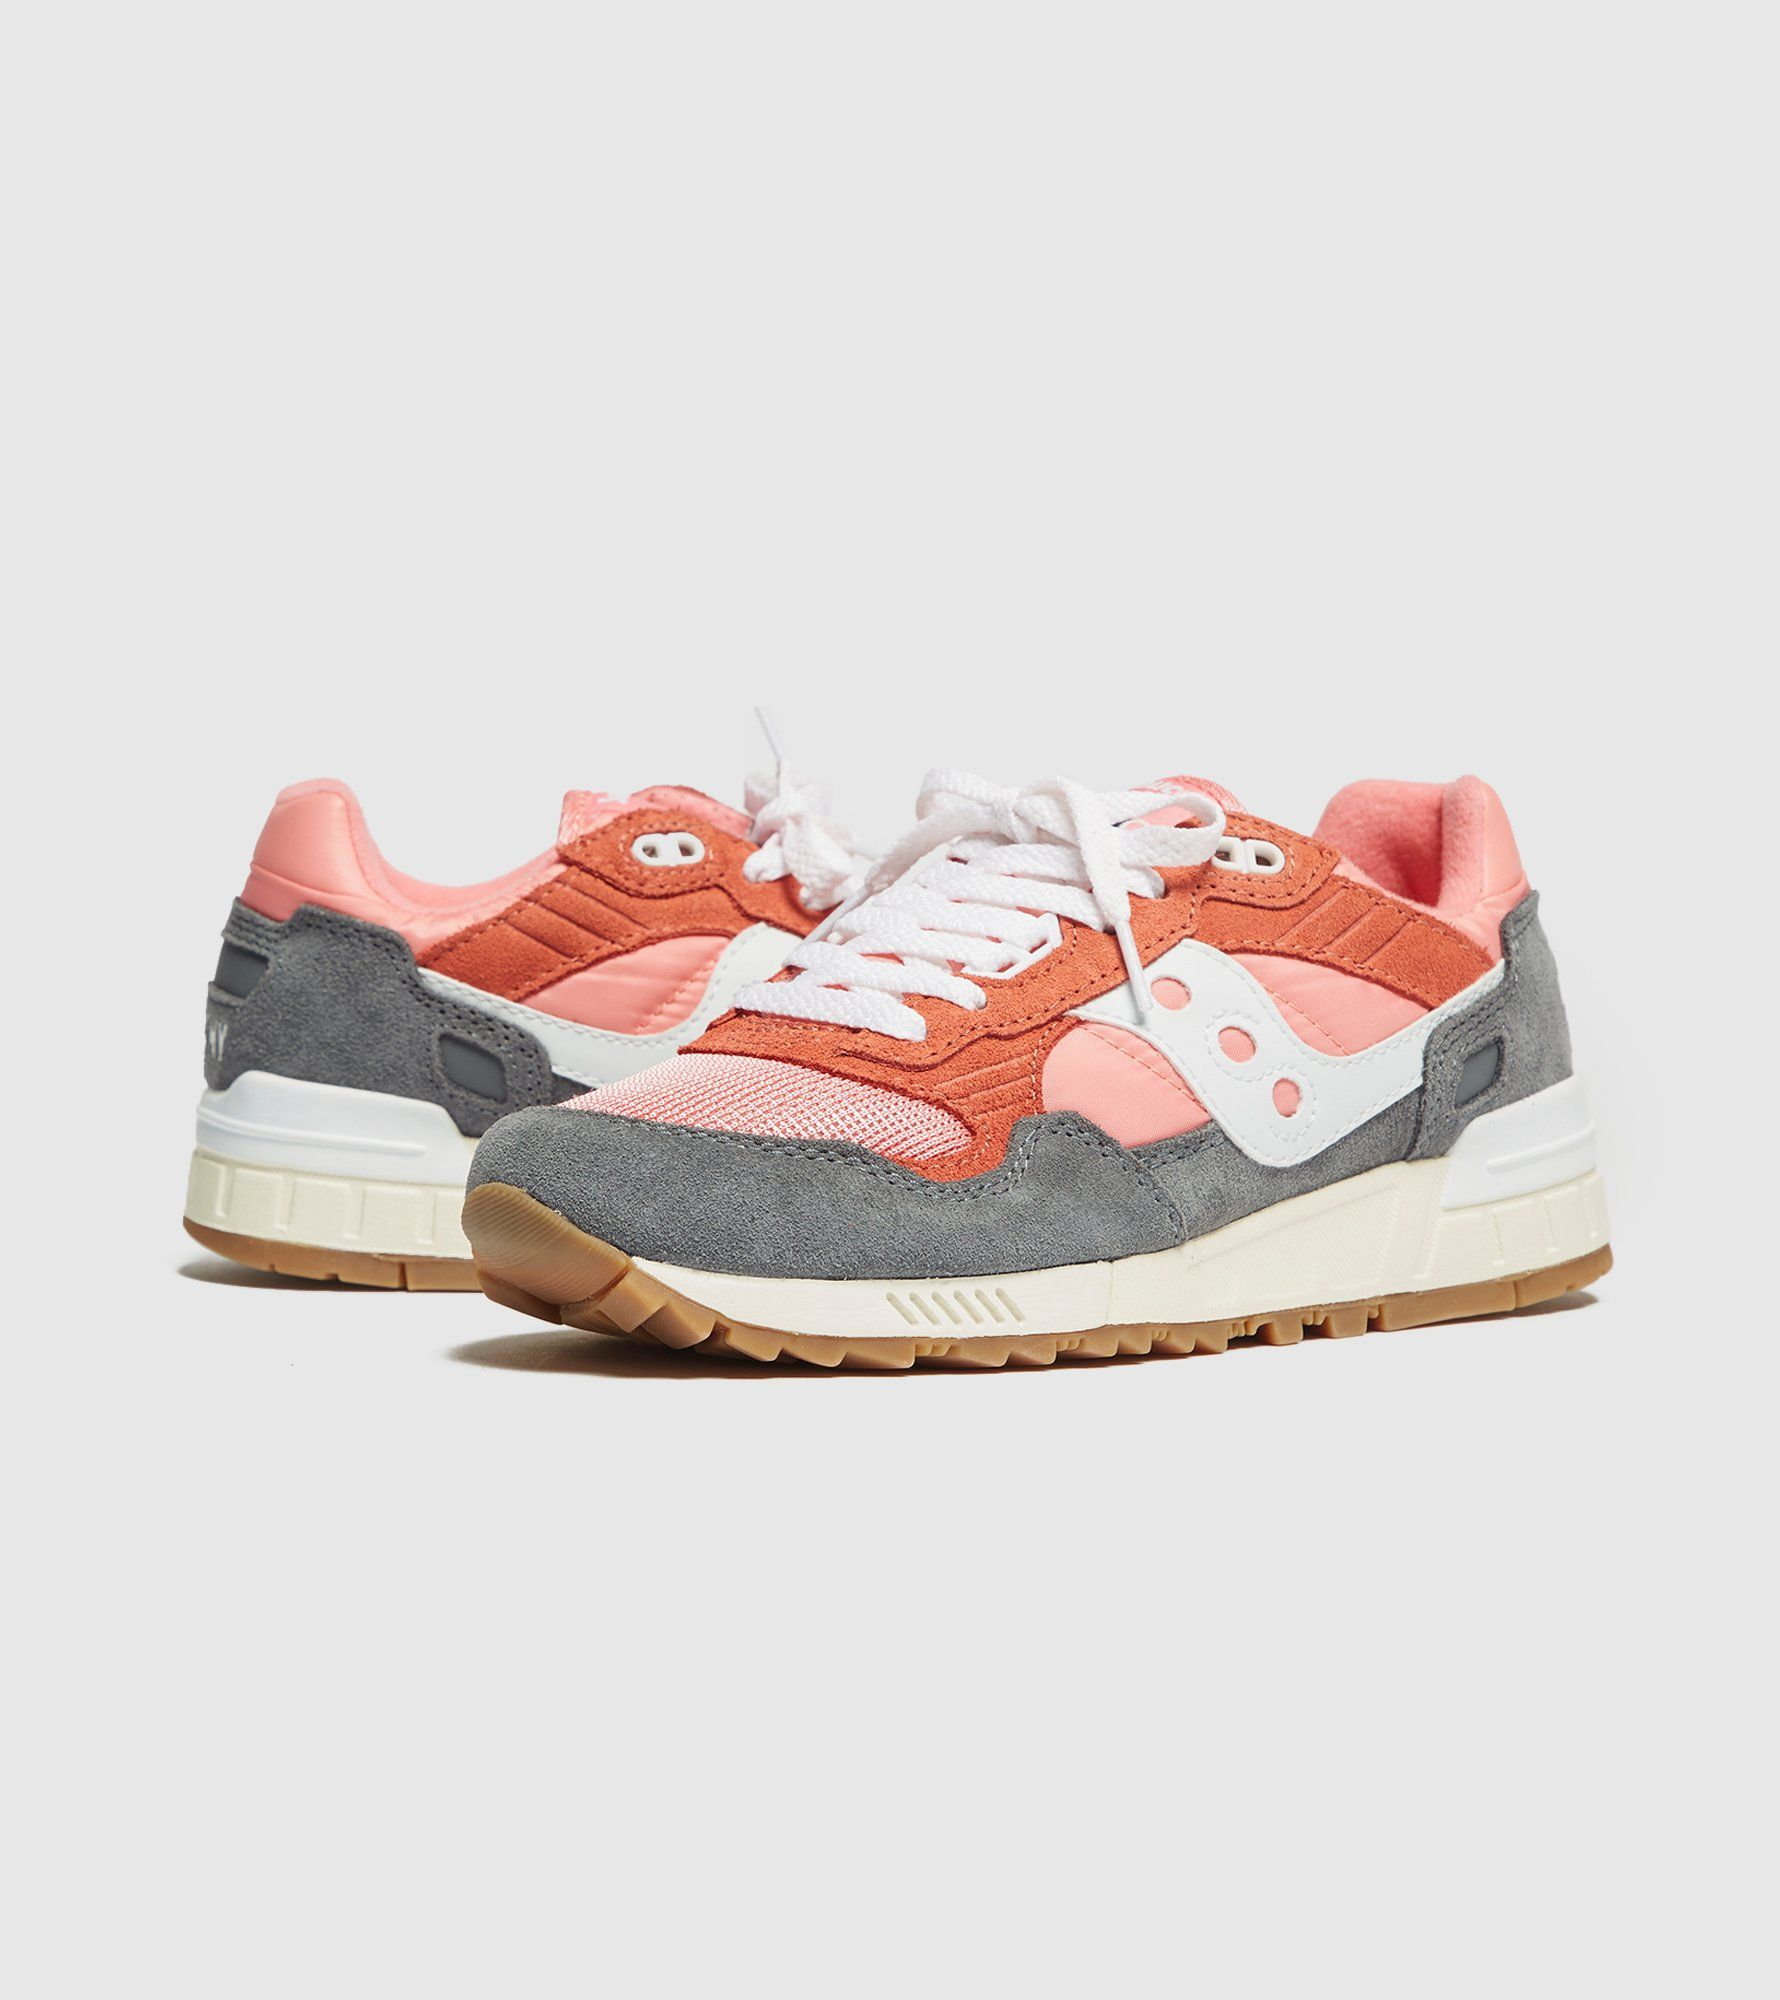 Saucony Shadow 5000 Vintage Women's